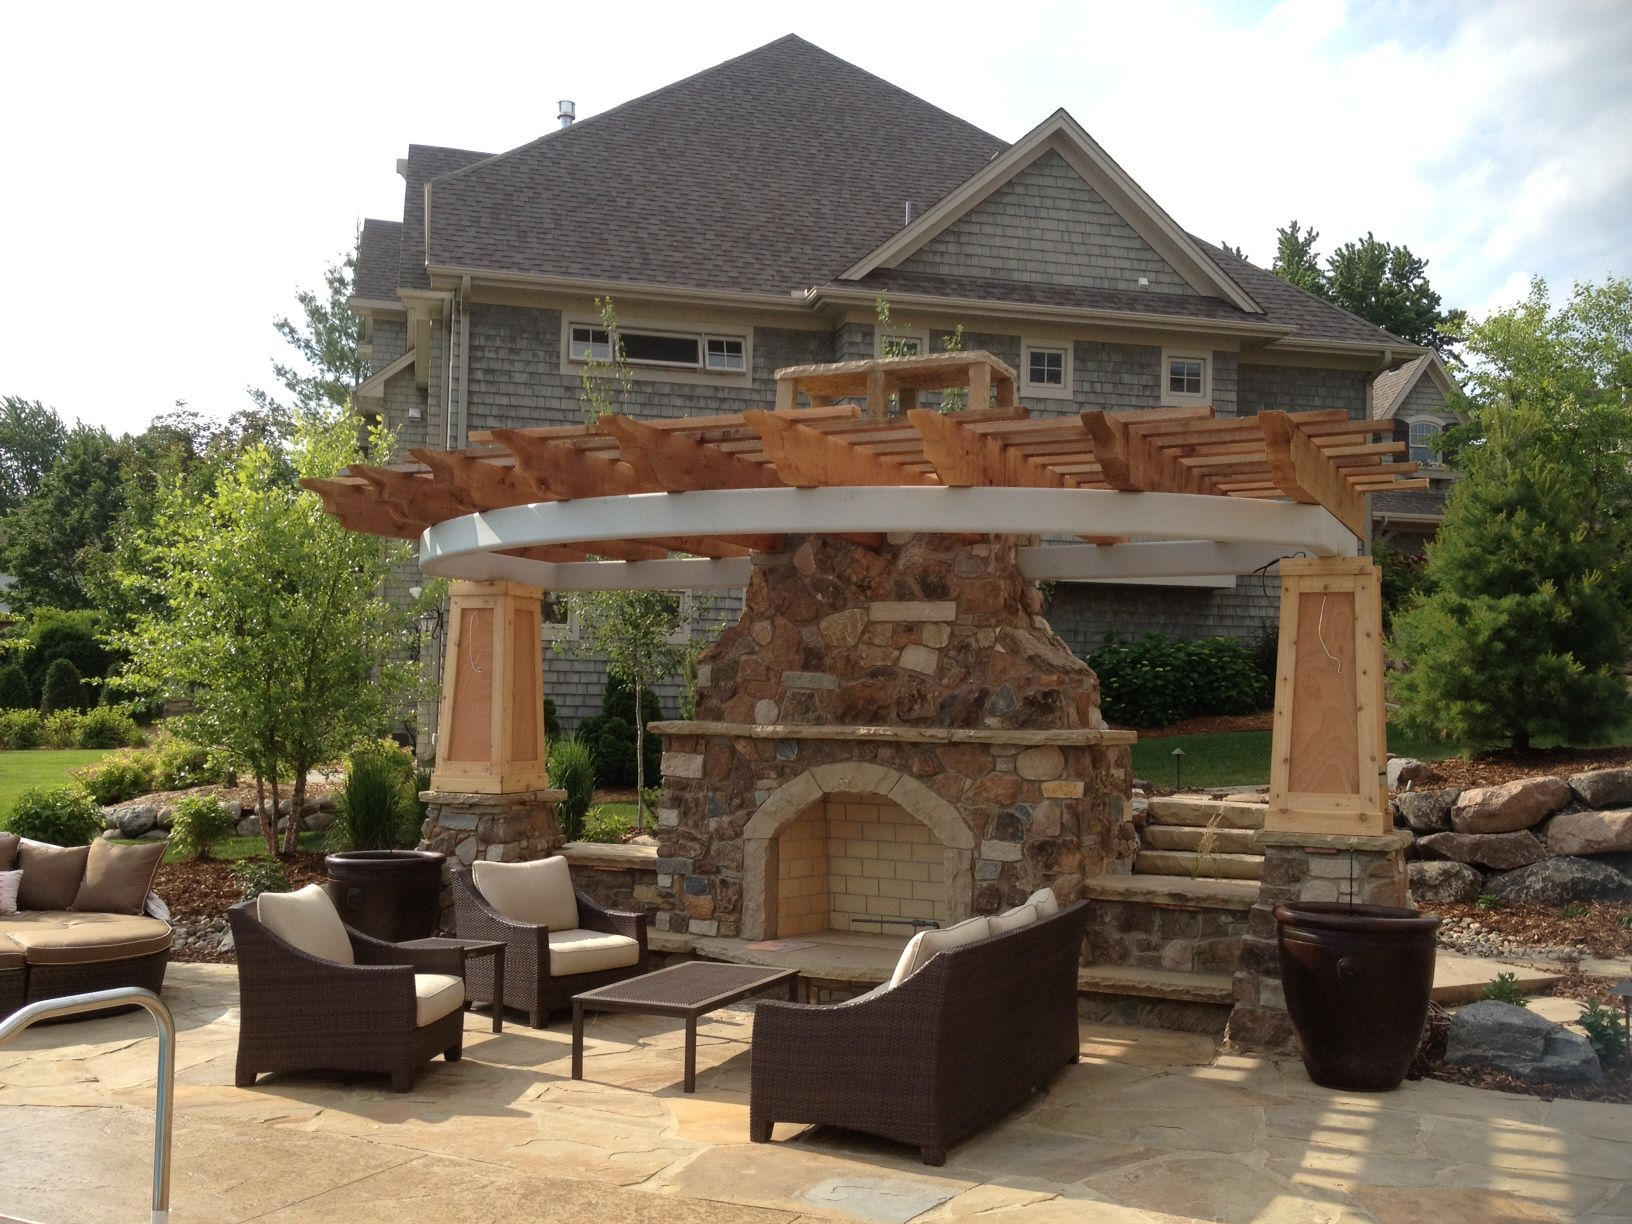 Minneapolis Outdoor Fireplace Projects Twin City Fireplace Outdoor Fireplace Kits Outdoor Fireplace Designs Fireplace Kits